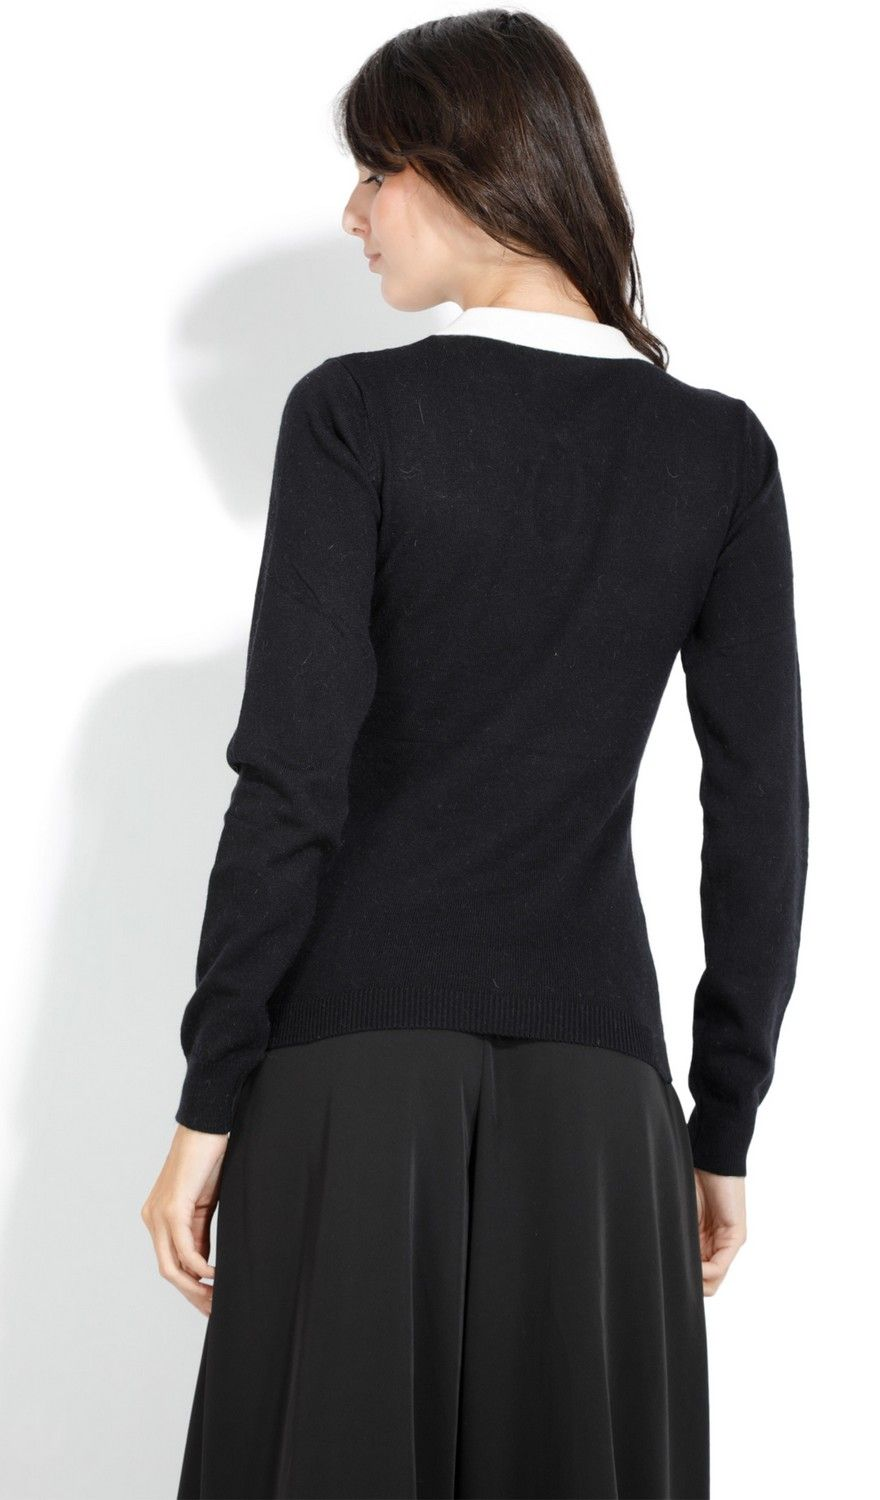 William De Faye Round Neck Keyhole with Diamond Button Sweater in Black